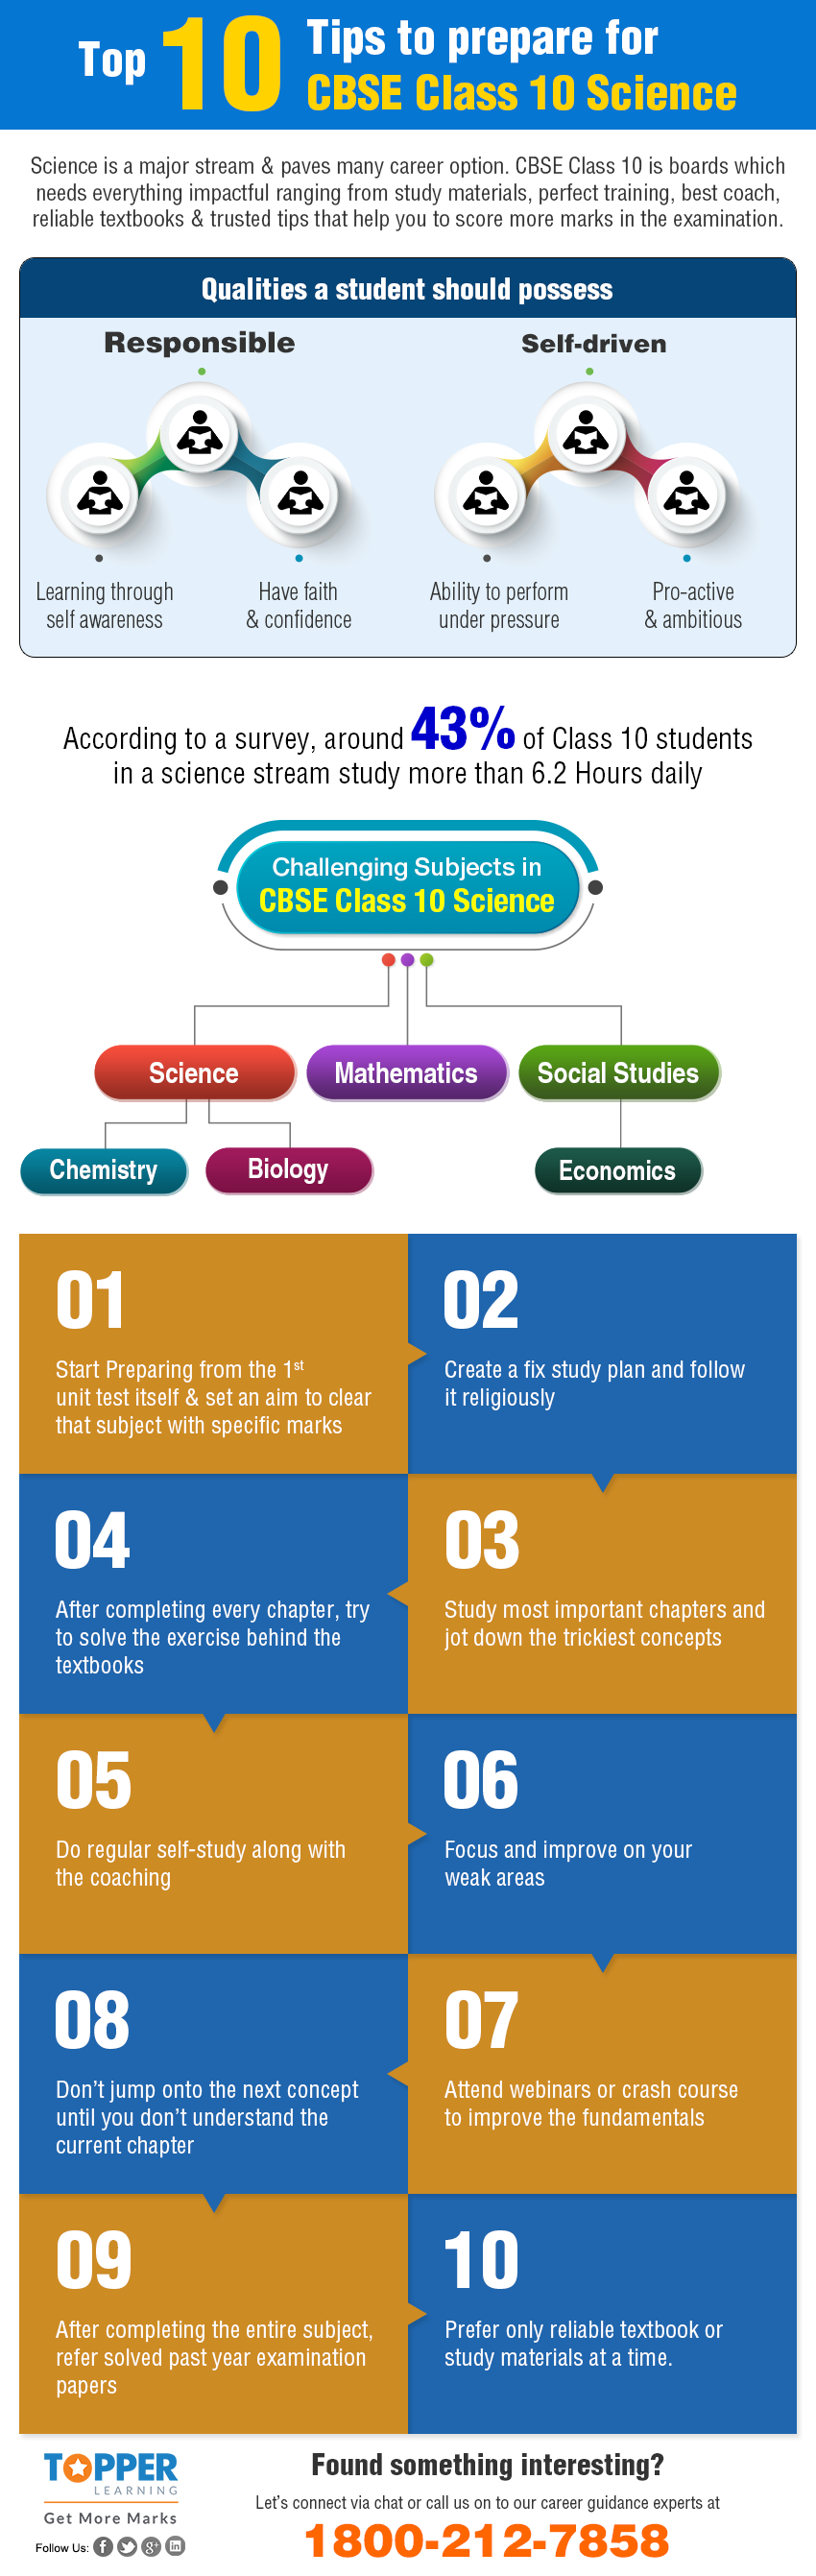 CBSE Class 10 Exam Tips